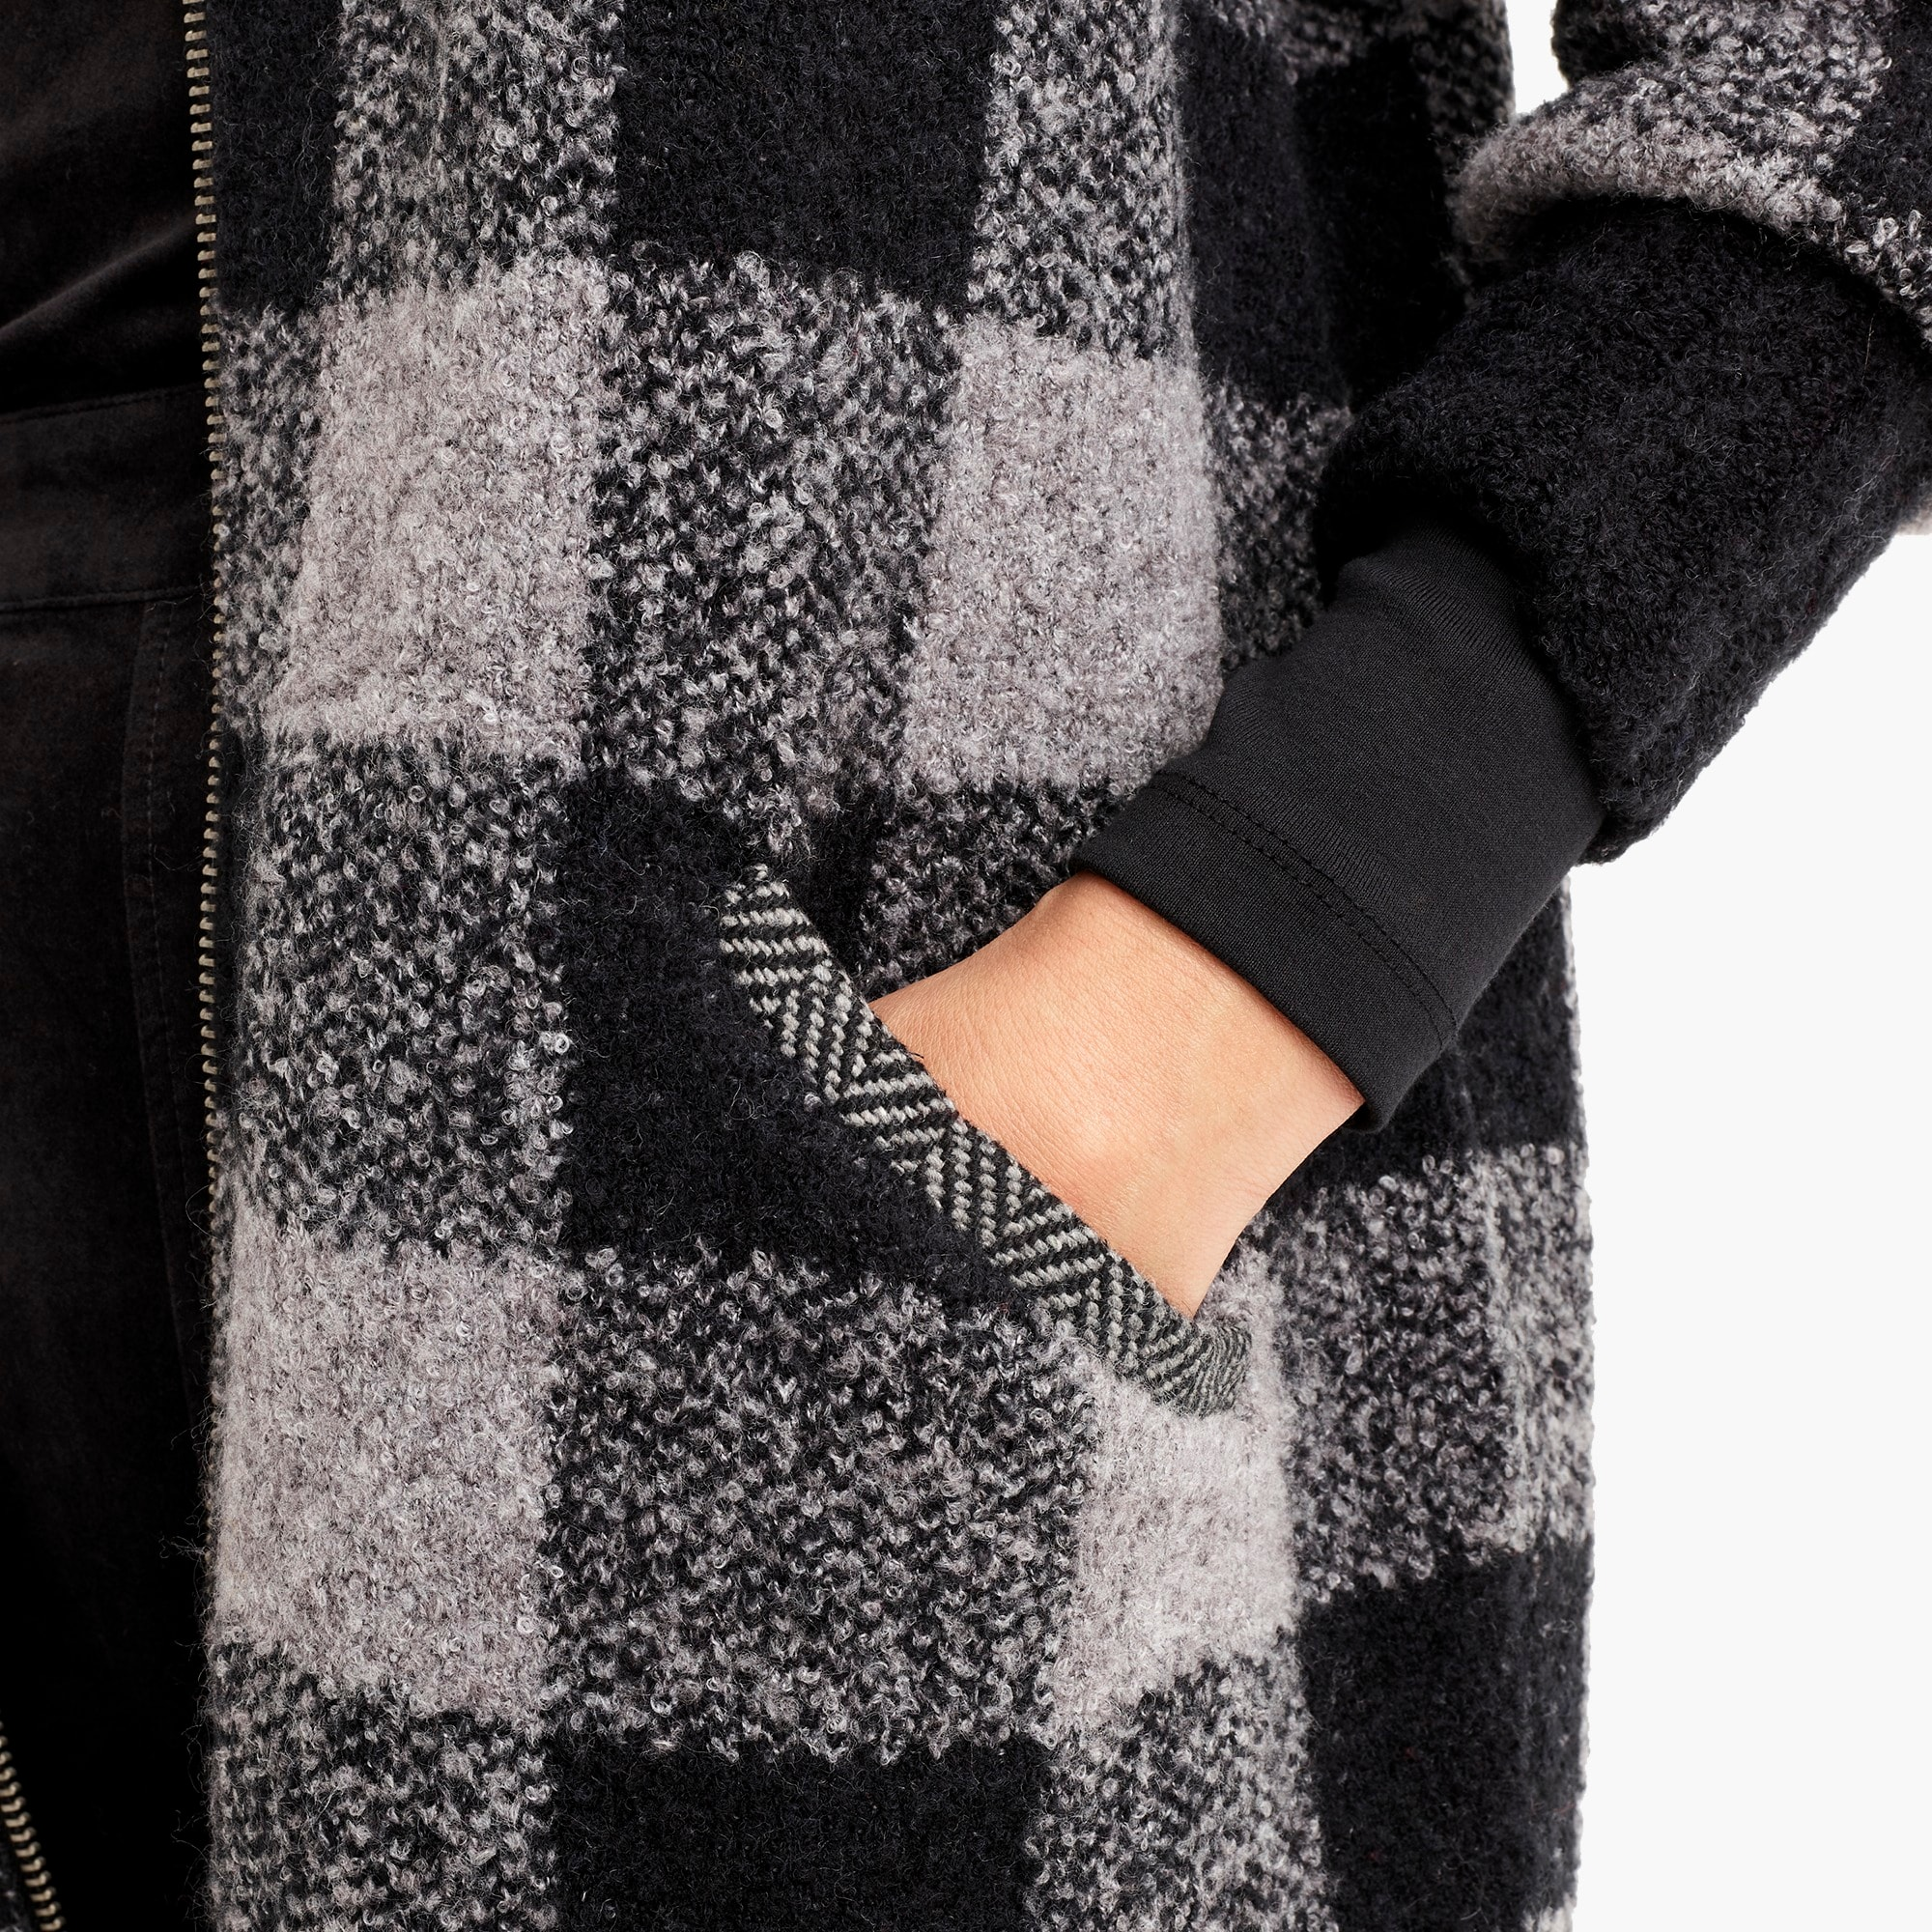 Image 3 for The Reeds X J.Crew buffalo check coat cardigan in black